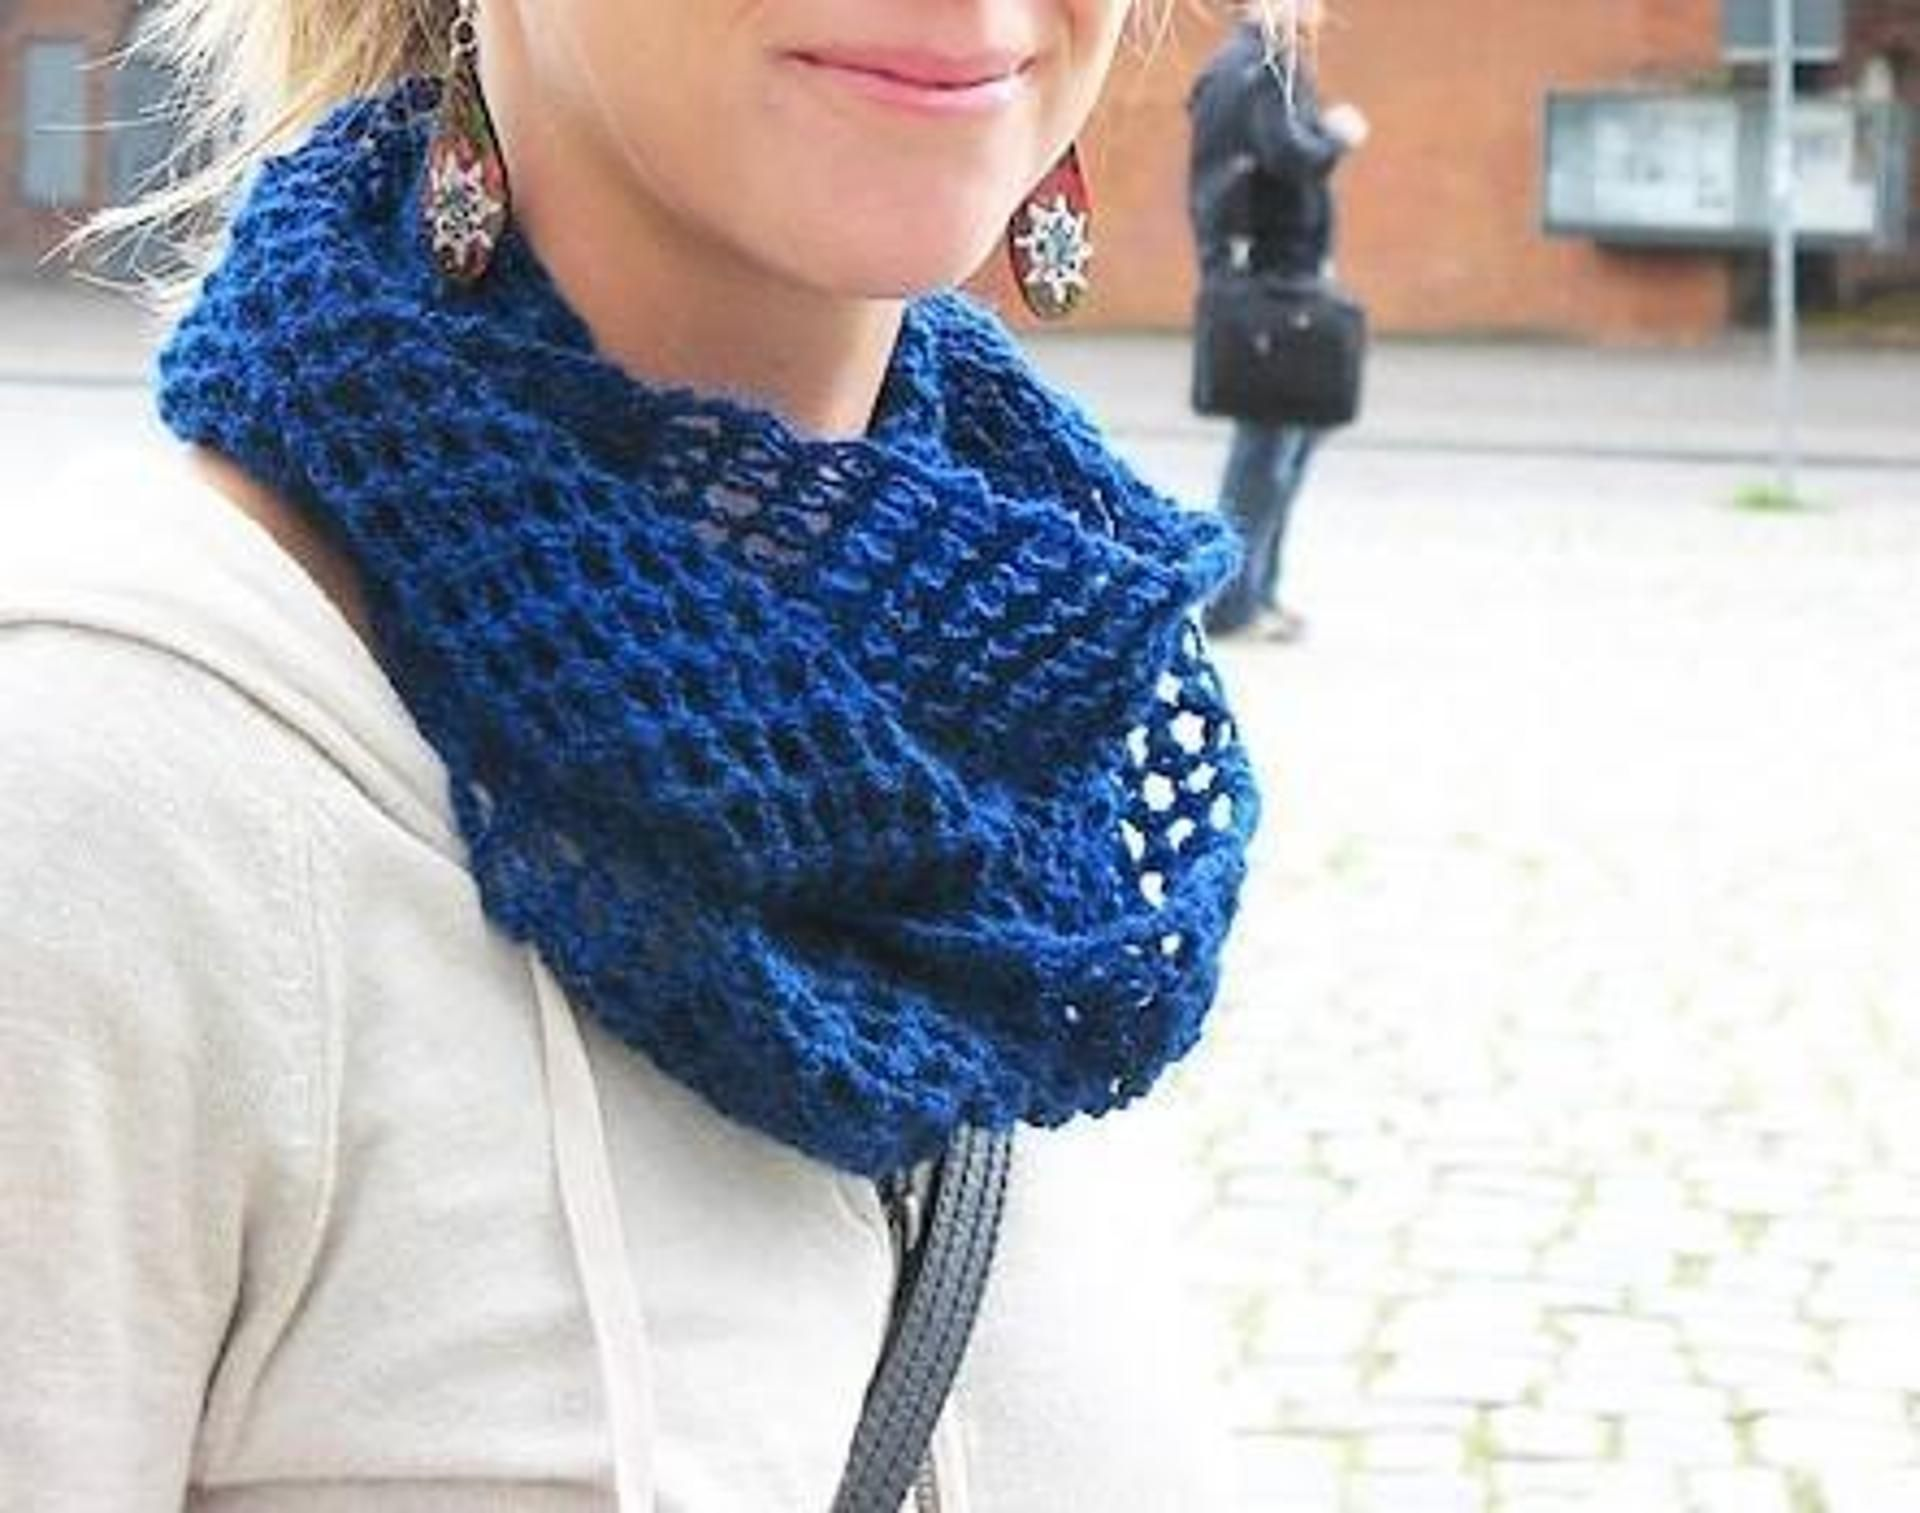 Blueprint craftsy knit accessories pinterest knitting blueprint craftsy malvernweather Choice Image